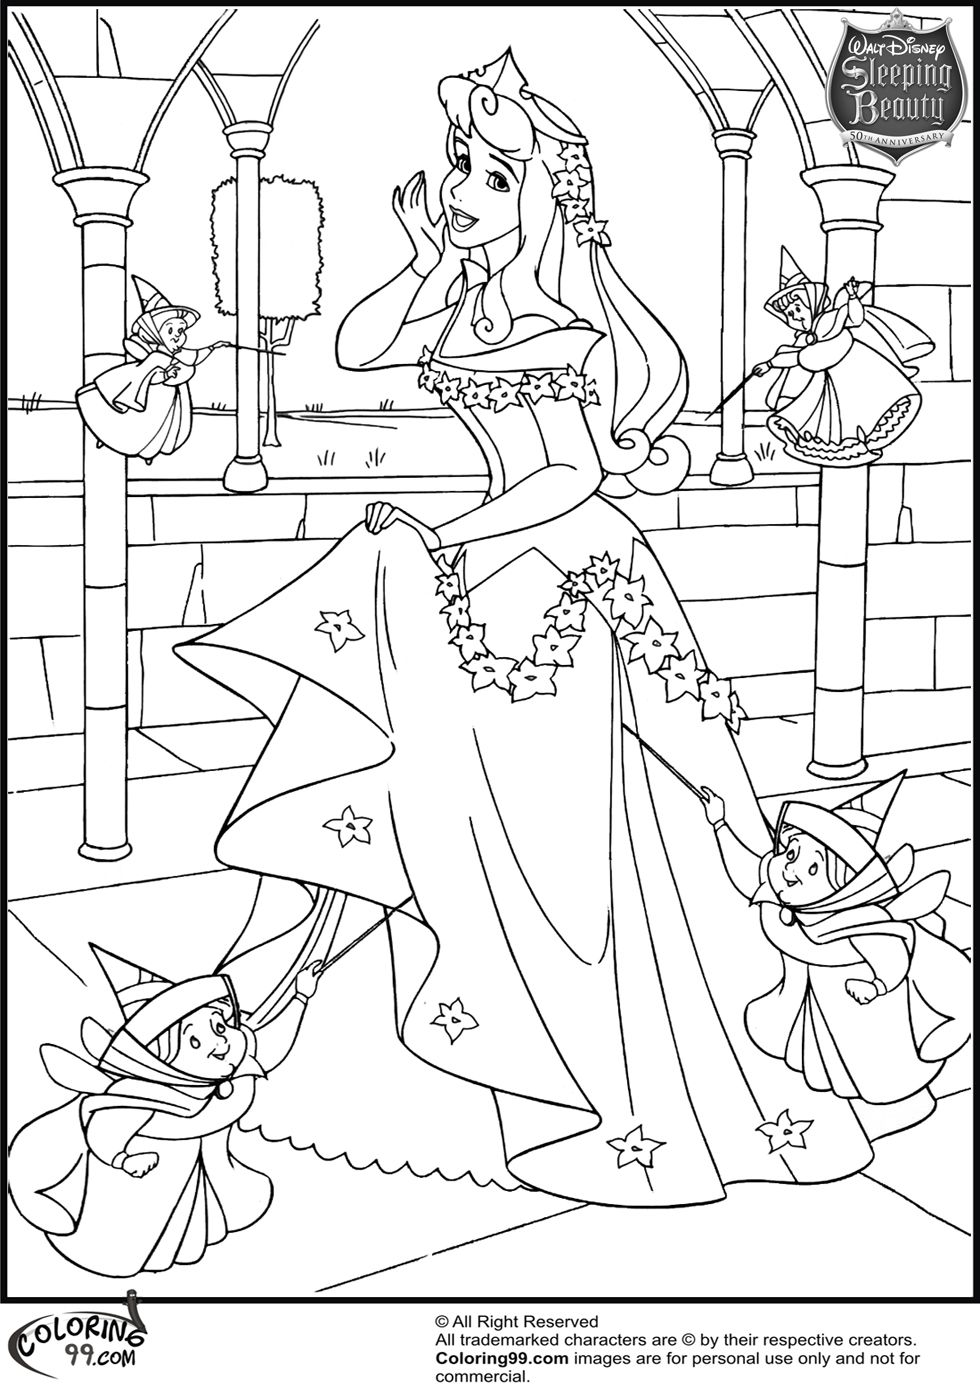 Disney princess coloring book for adults - Disney Princess Aurora Coloring Pages Team Colors